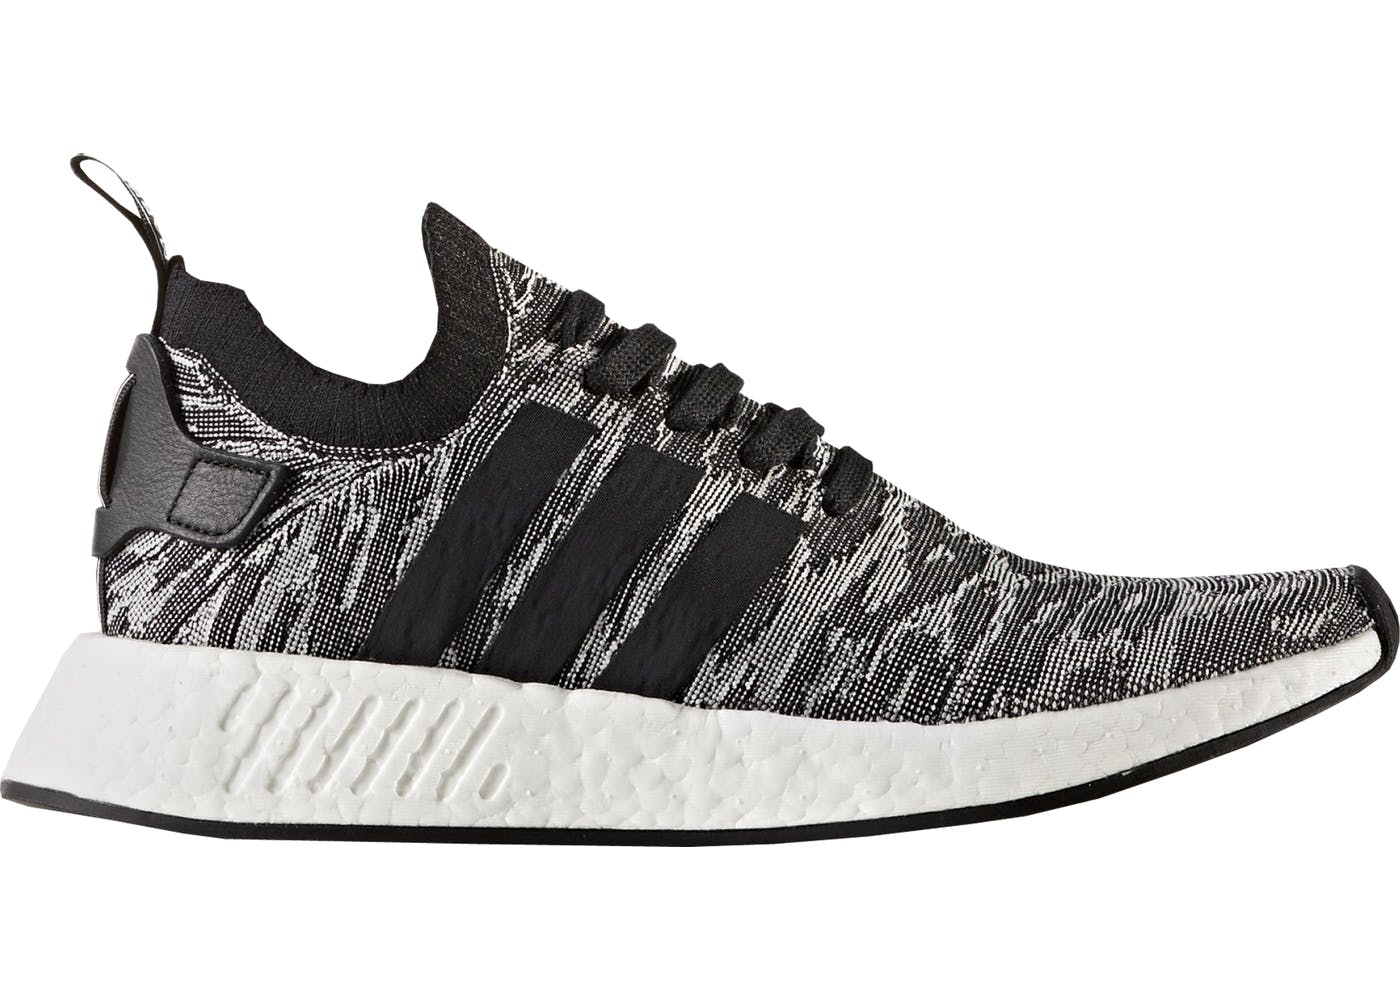 c192d3e149014 Official Images Of The Upcoming Adidas NMD R2 Colorways Solely